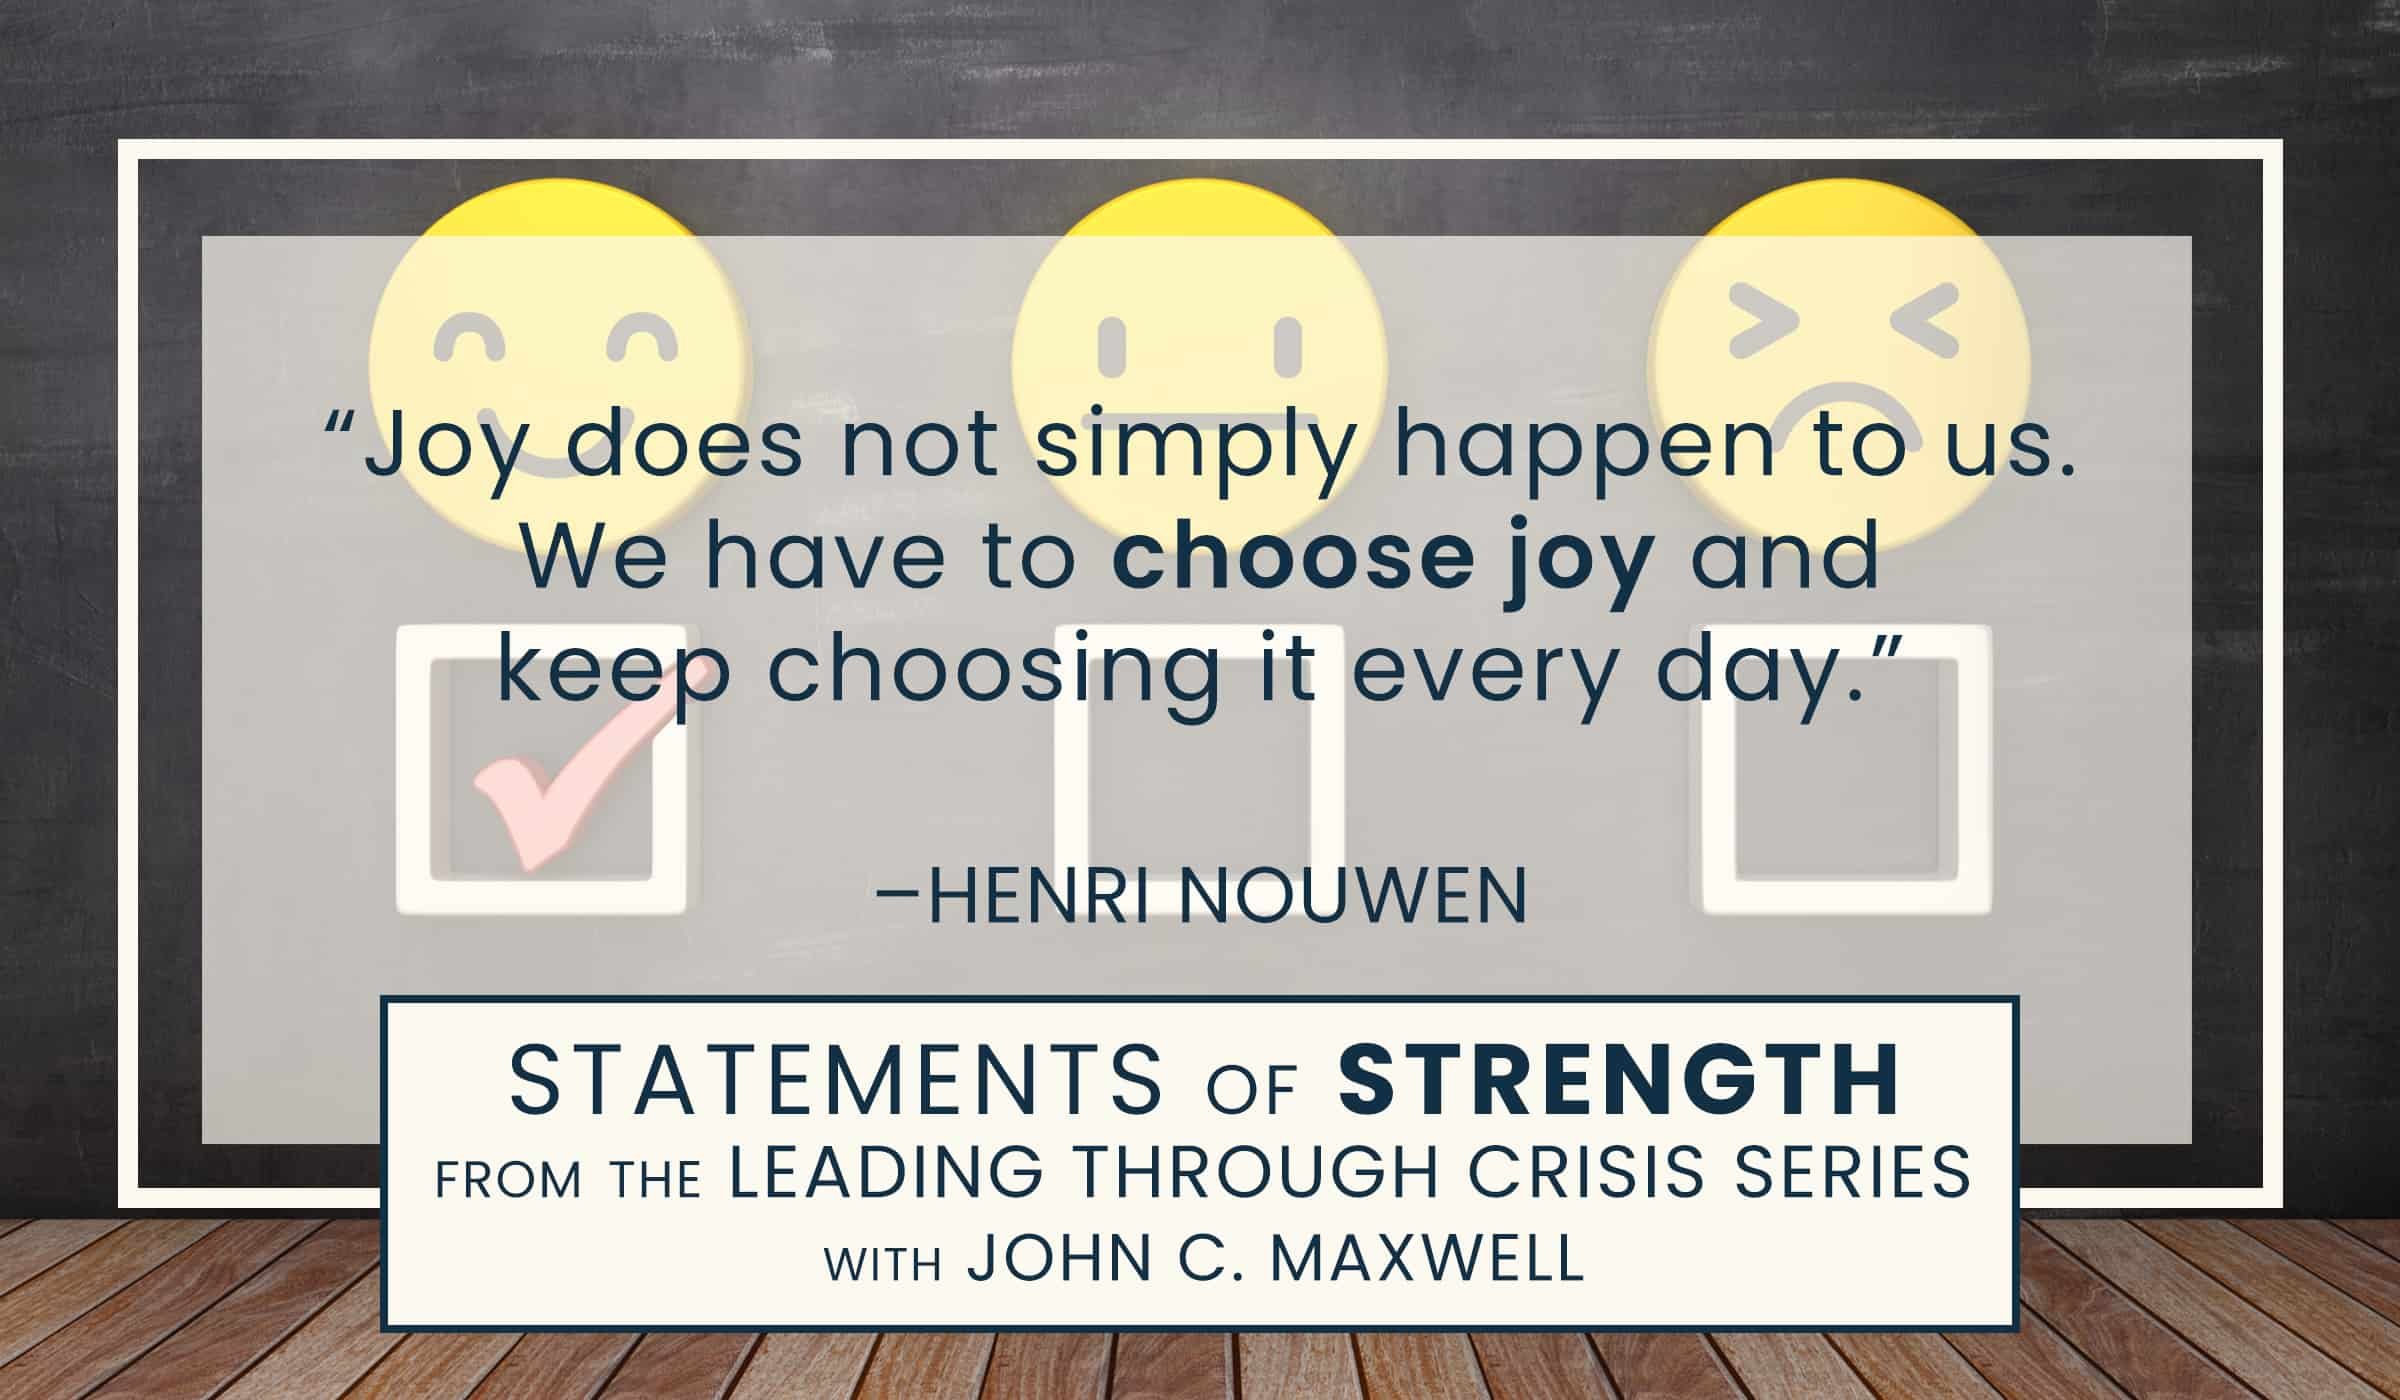 image of quote pic with quotation by henri nouwen